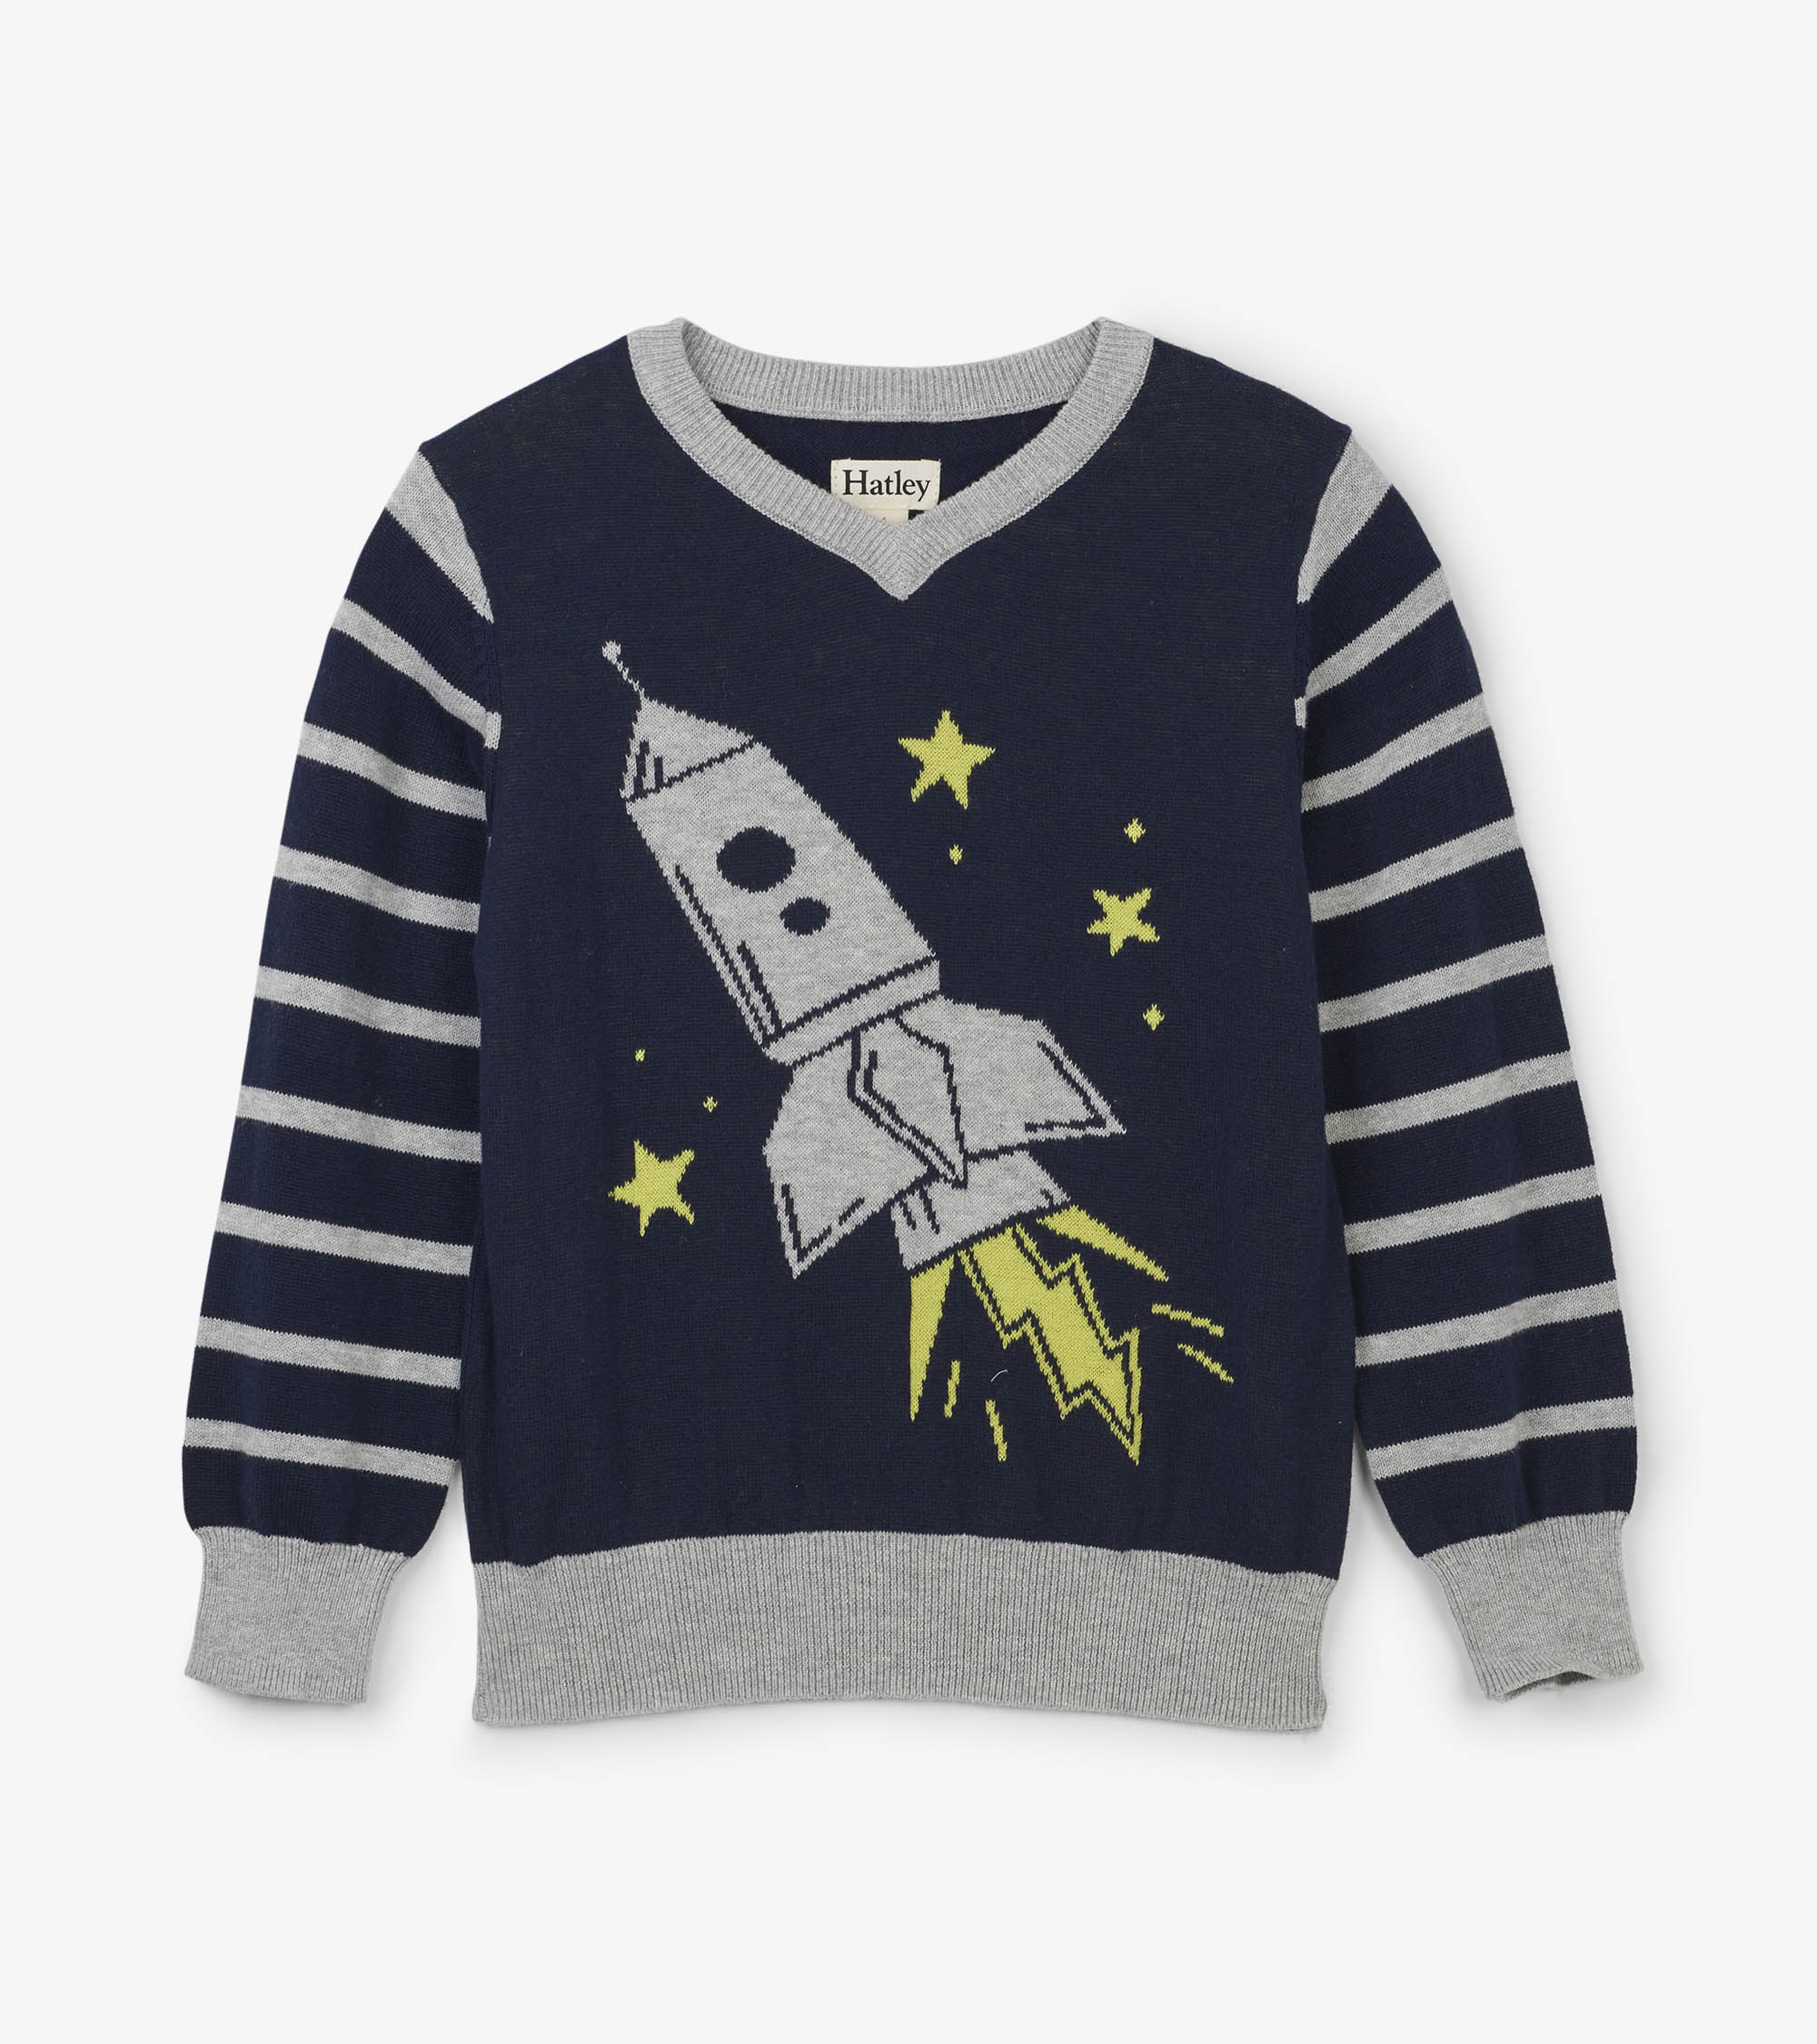 WAS £30.00 Hatley Rocket Ship V-Neck Sweater